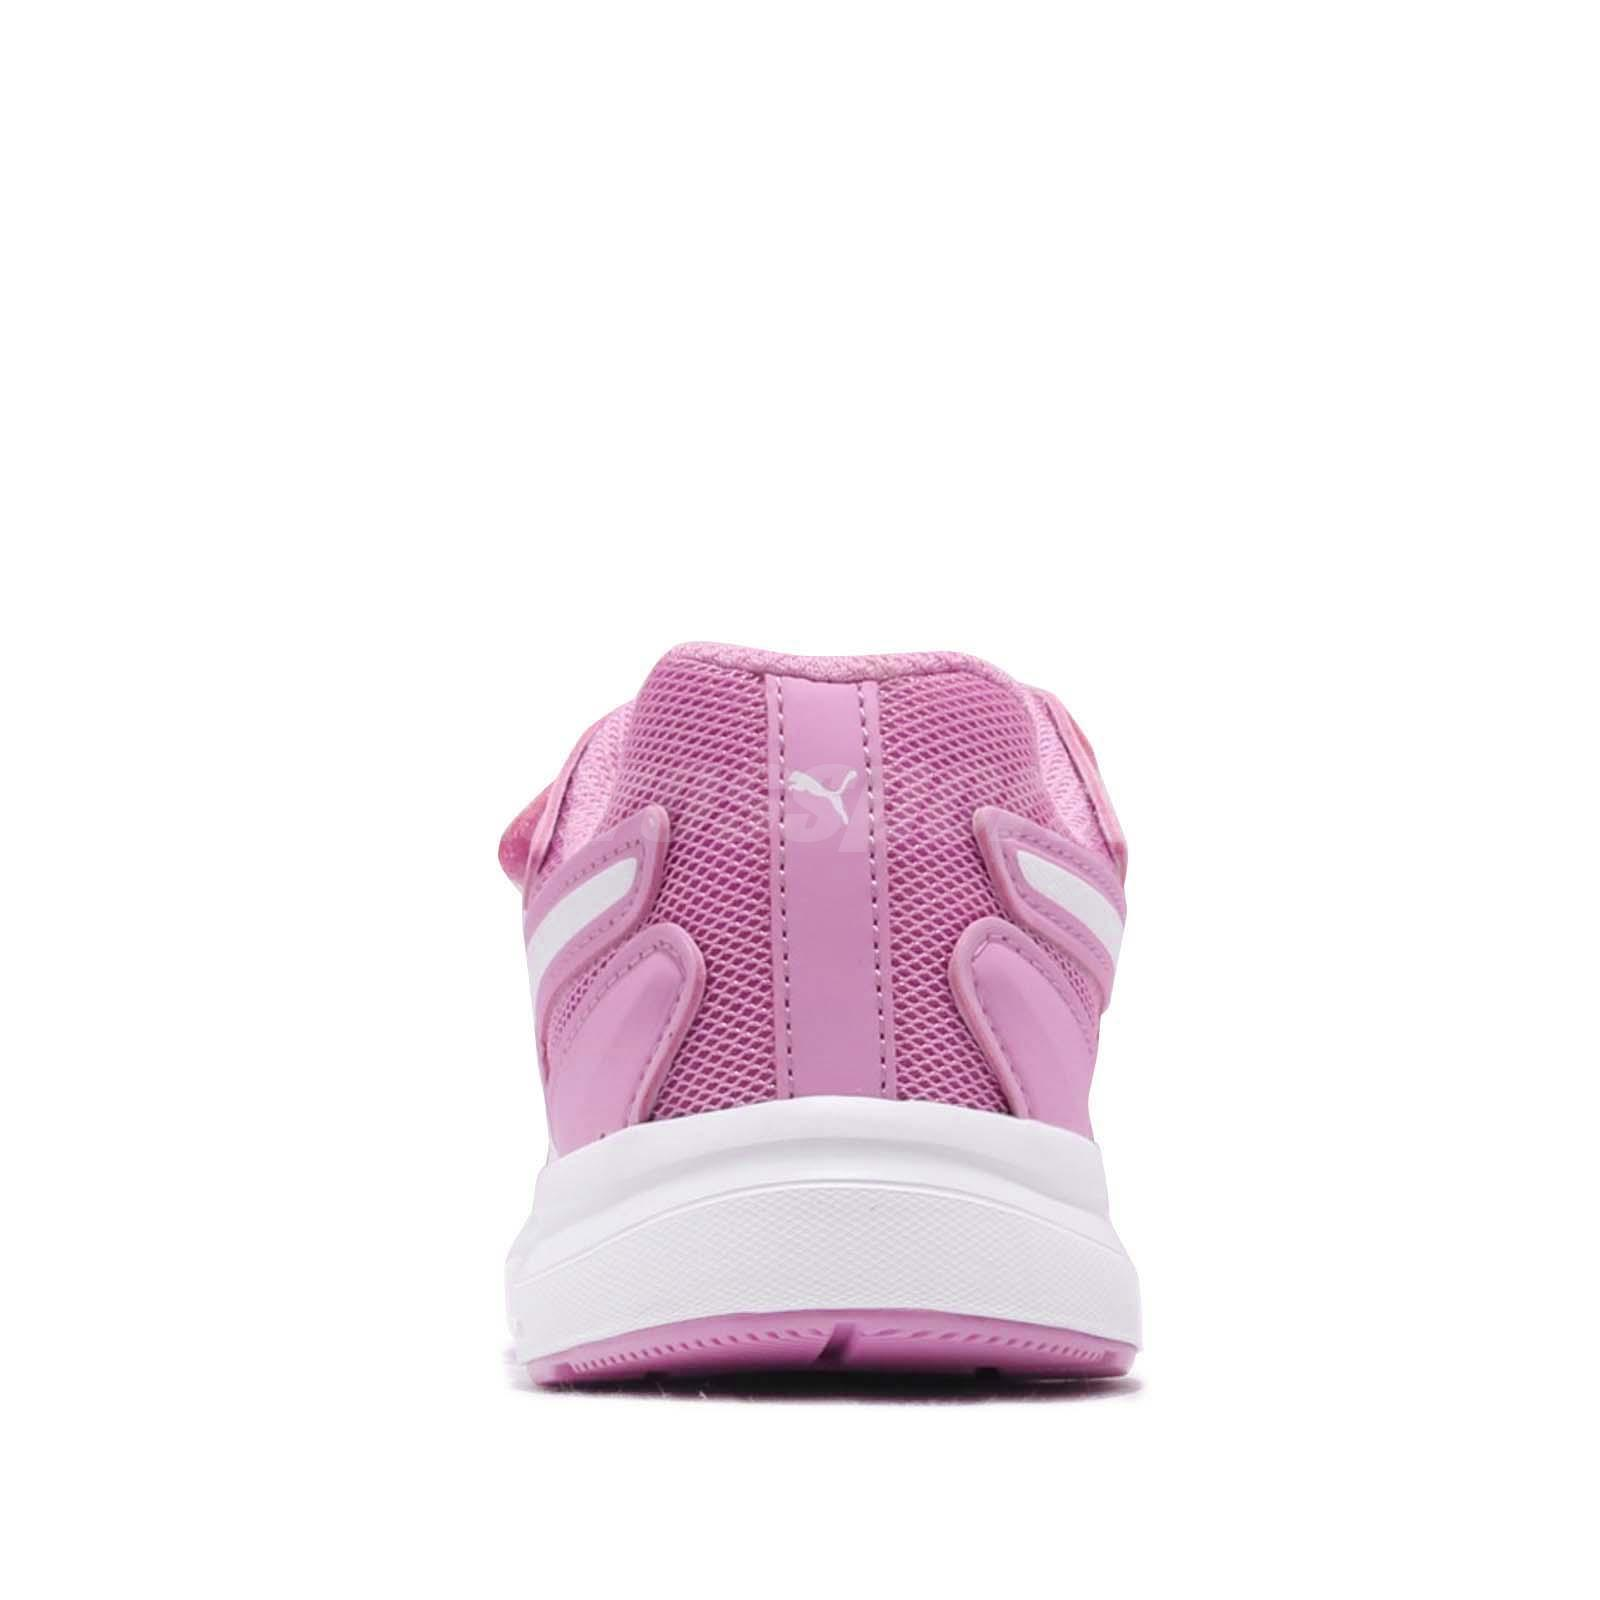 Color  ORCHID-PUMA WHITE. Made In  China. Condition  Brand New With Box a733ee6cb77